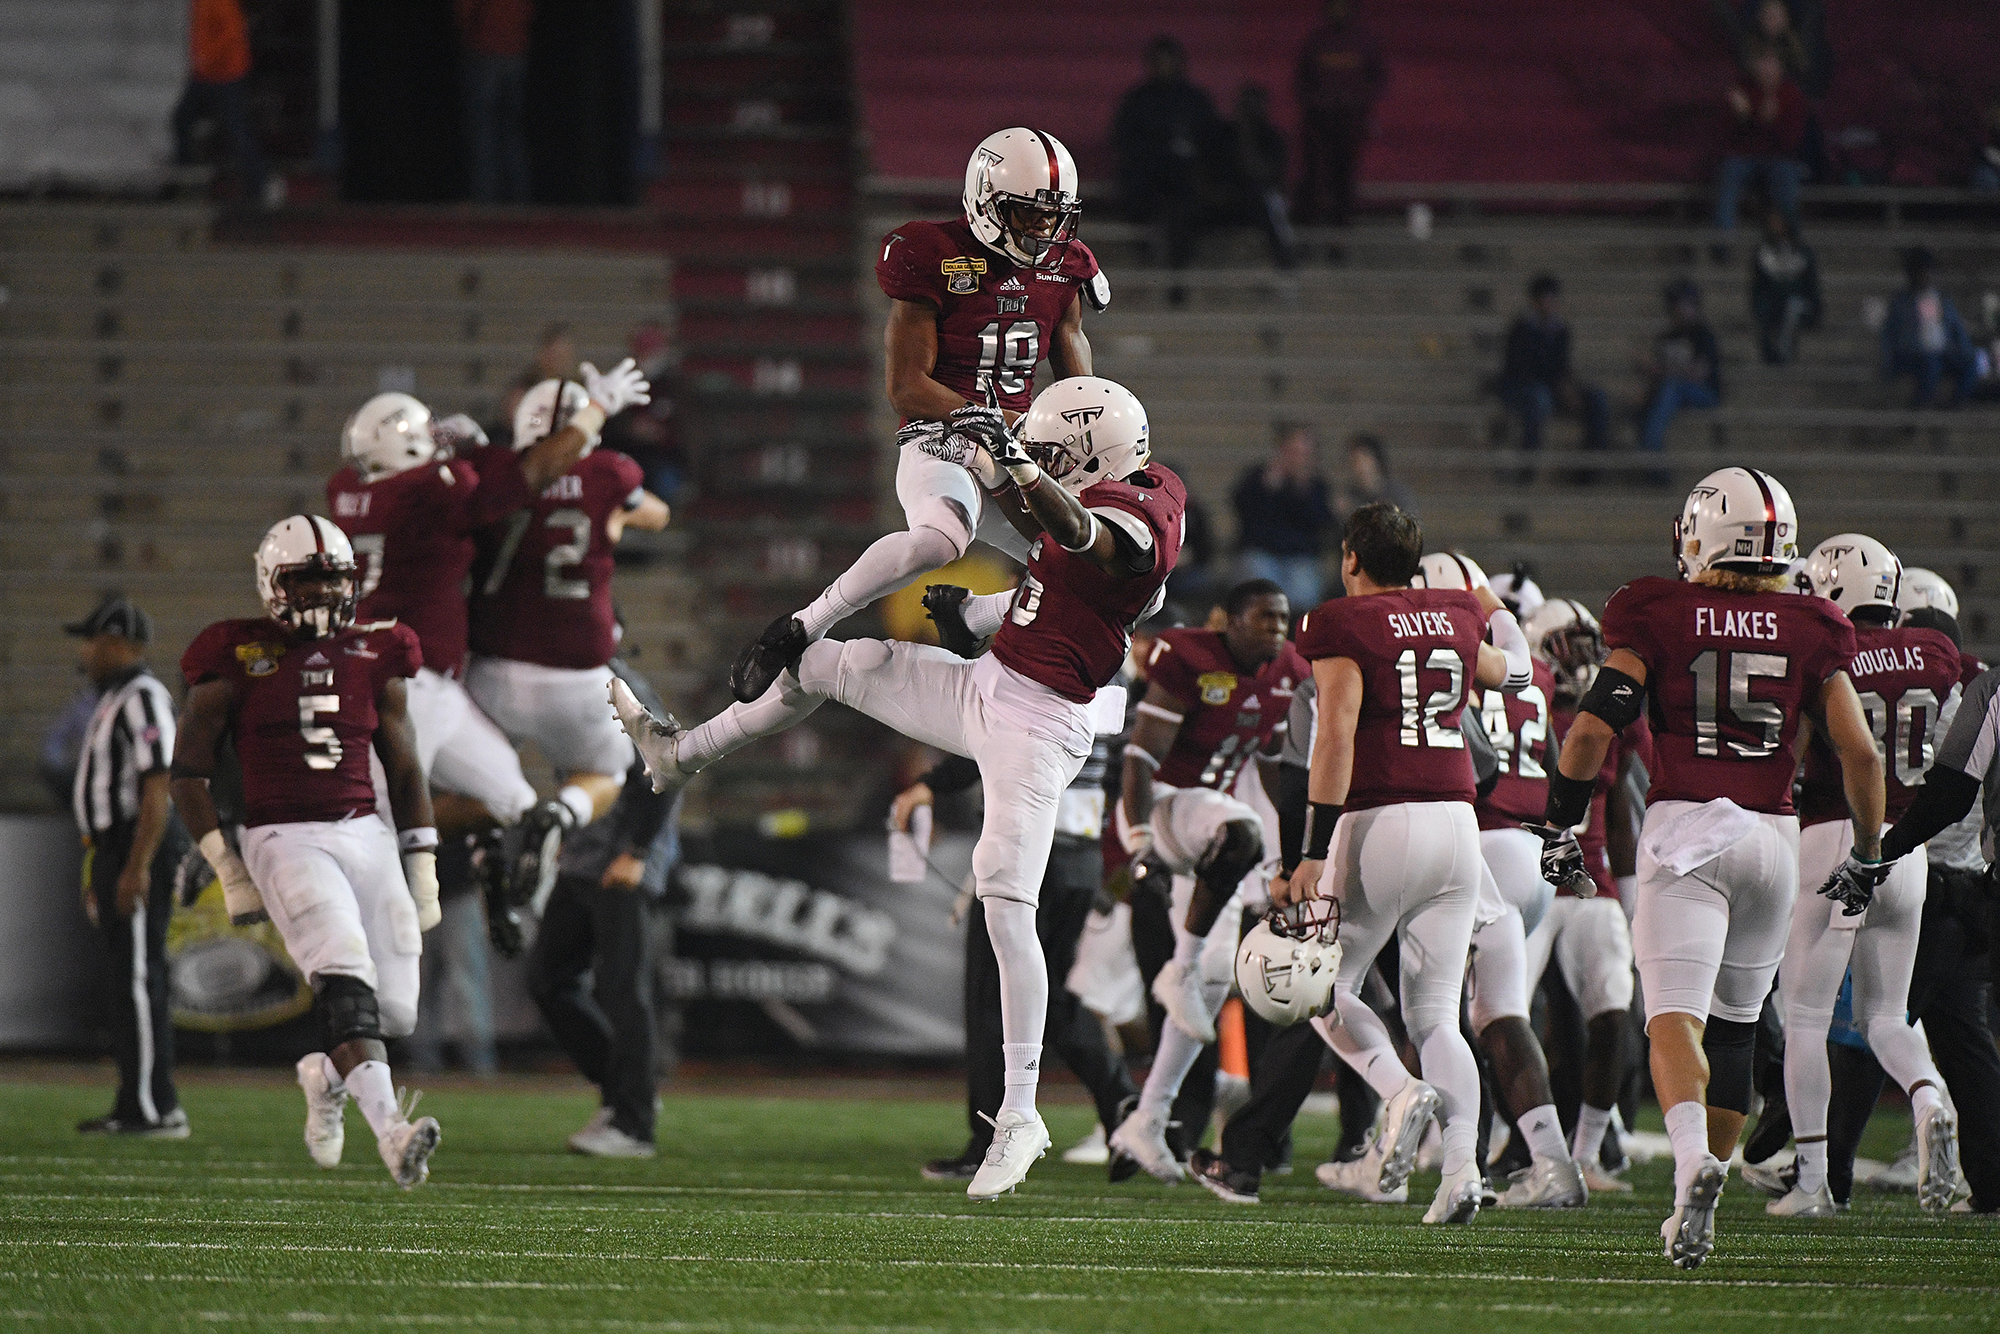 Troy cornerback Blace Brown (18) and wide receiver Justin Wyatt (86) celebrate after a missed Ohio during the second half of the Dollar General Bowl NCAA college football game in Mobile, Ala., Friday, Dec. 23, 2016. Troy won 28-23. (Photo/Thomas Graning)